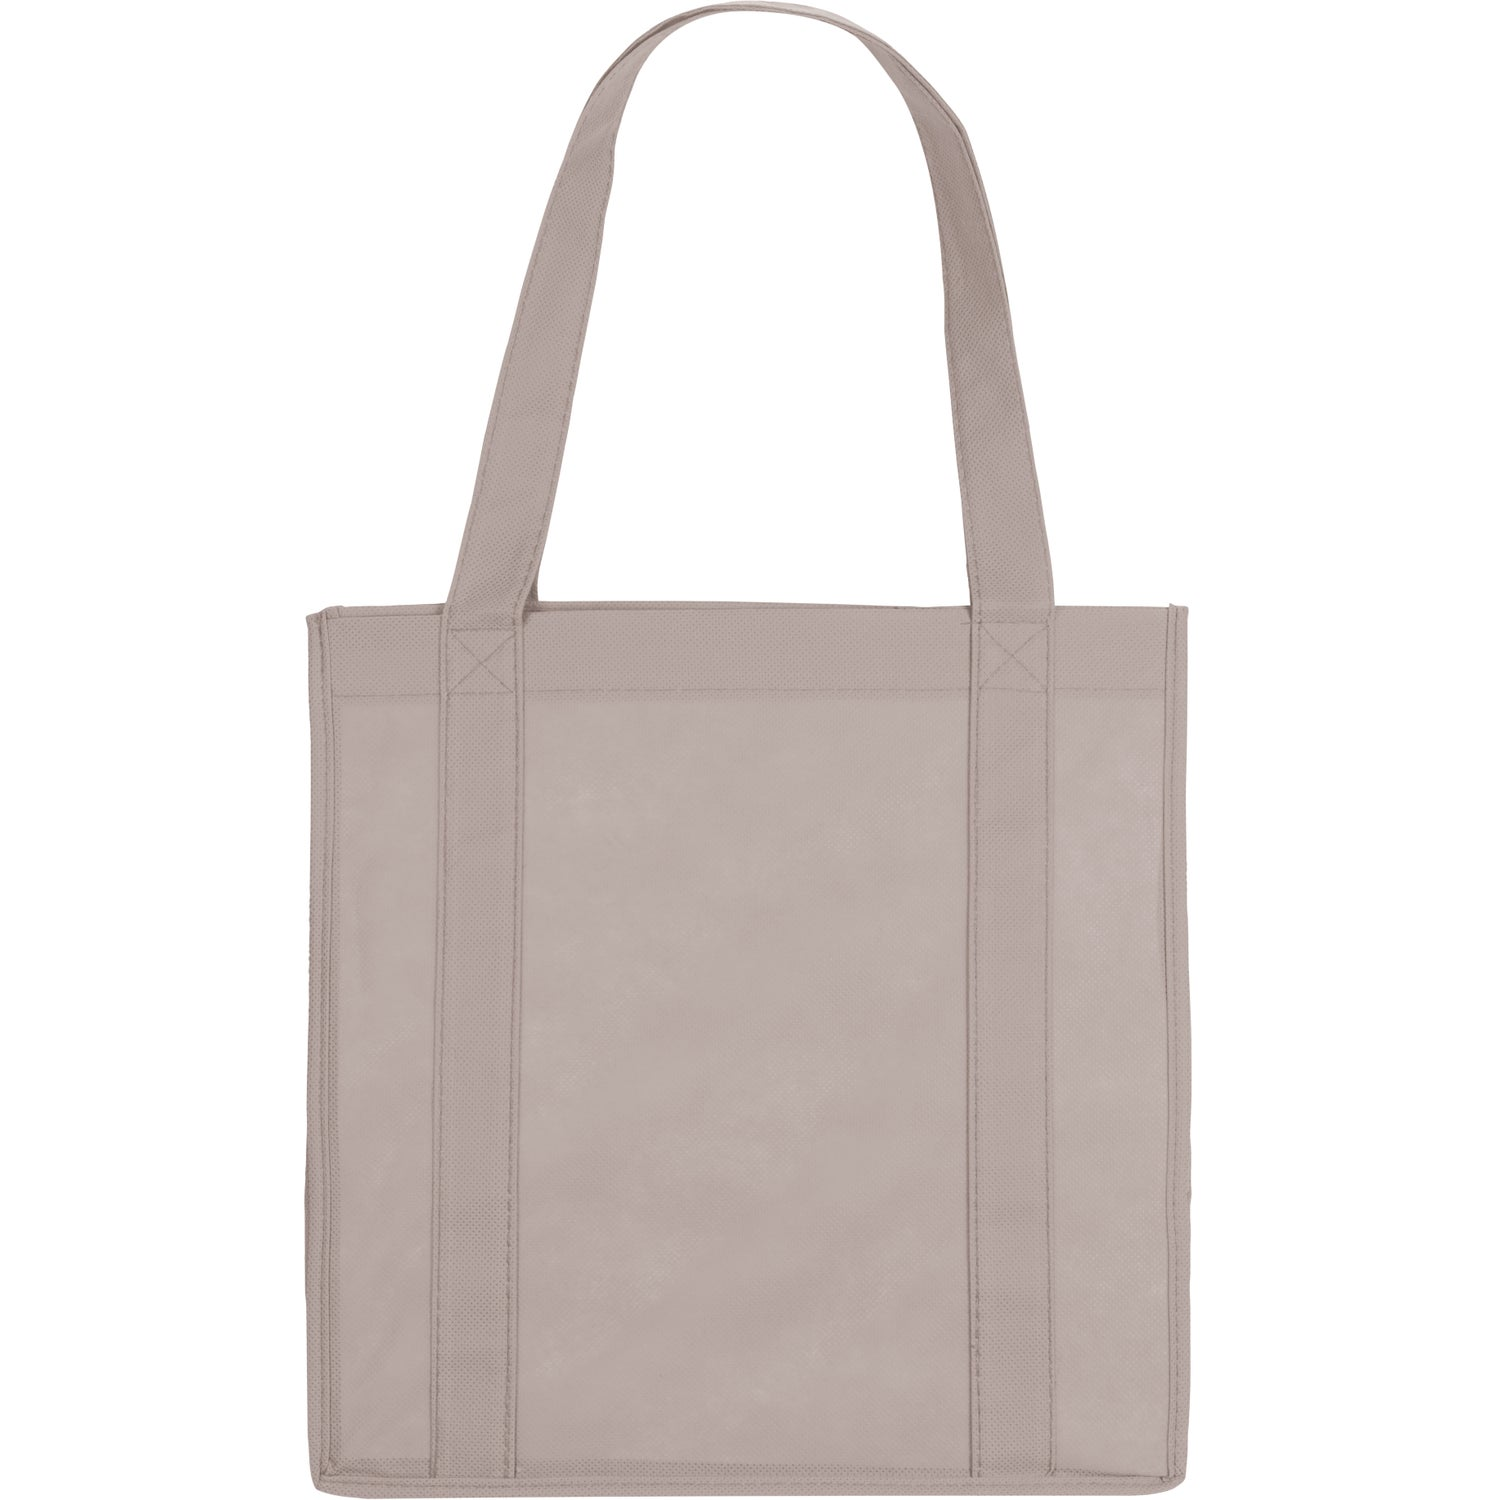 ff5d3d50b Large Grocery Tote Bags